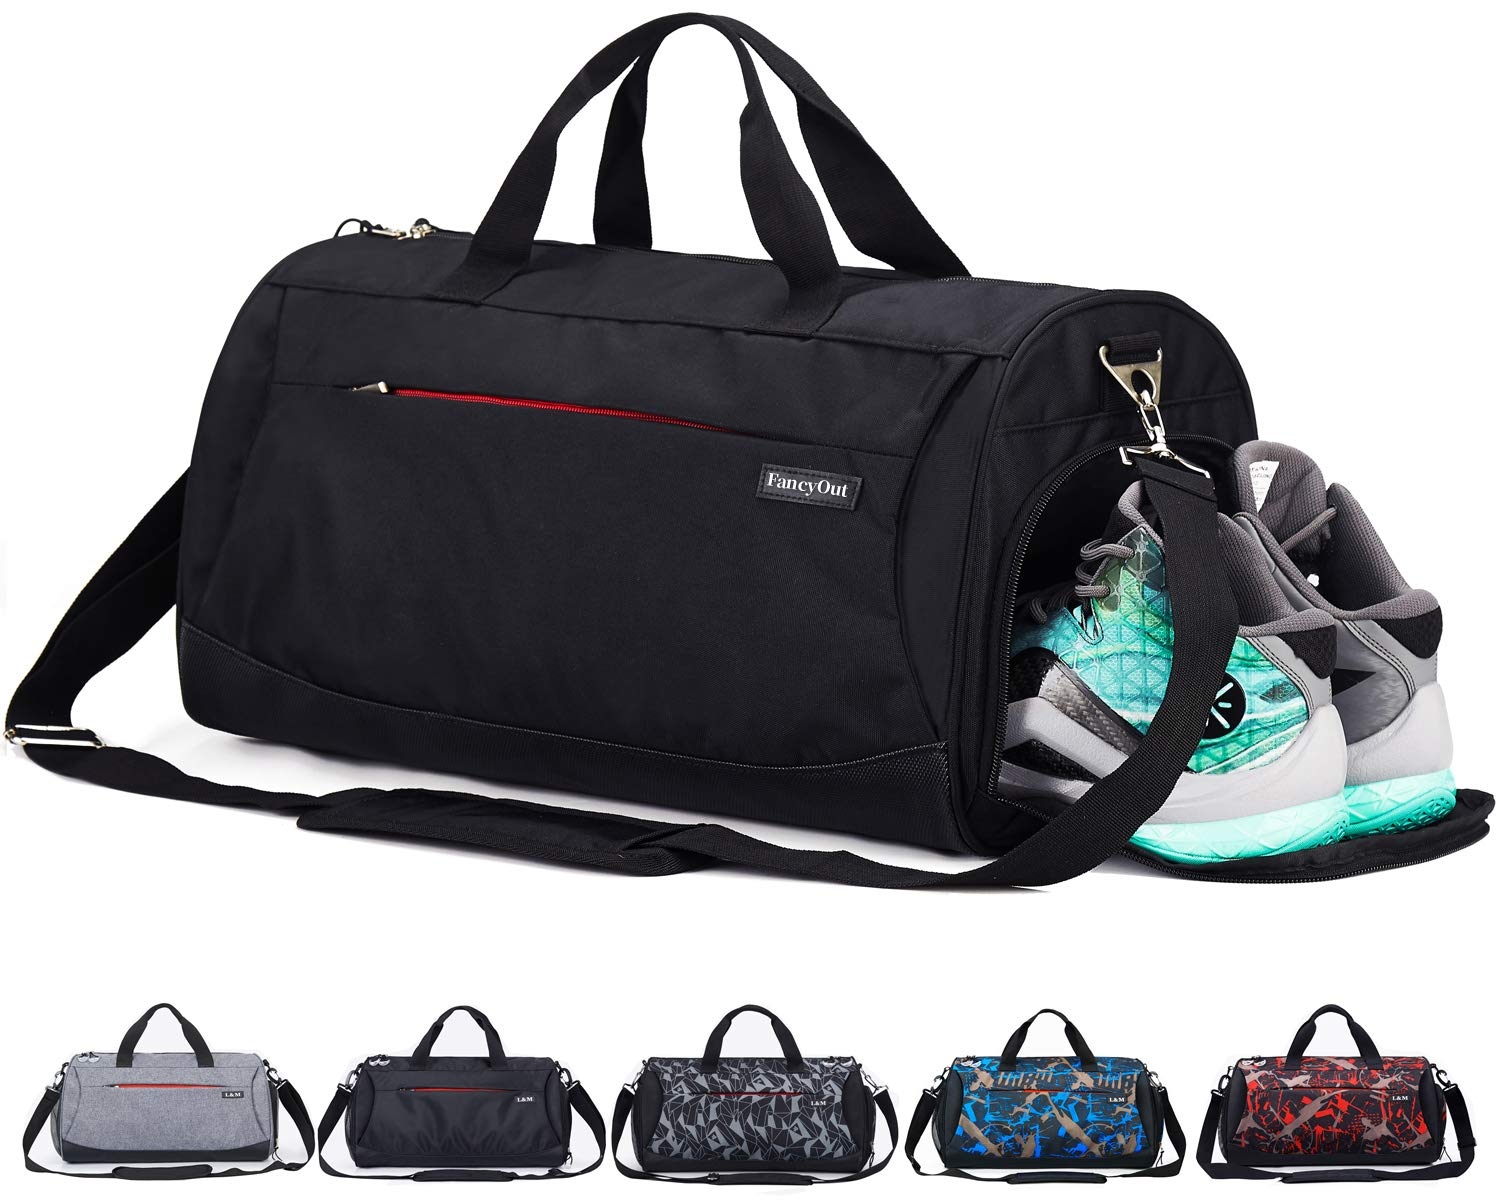 172f929ad613 CoCoMall Sports Gym Bag with Shoes Compartment and Wet Pocket ...